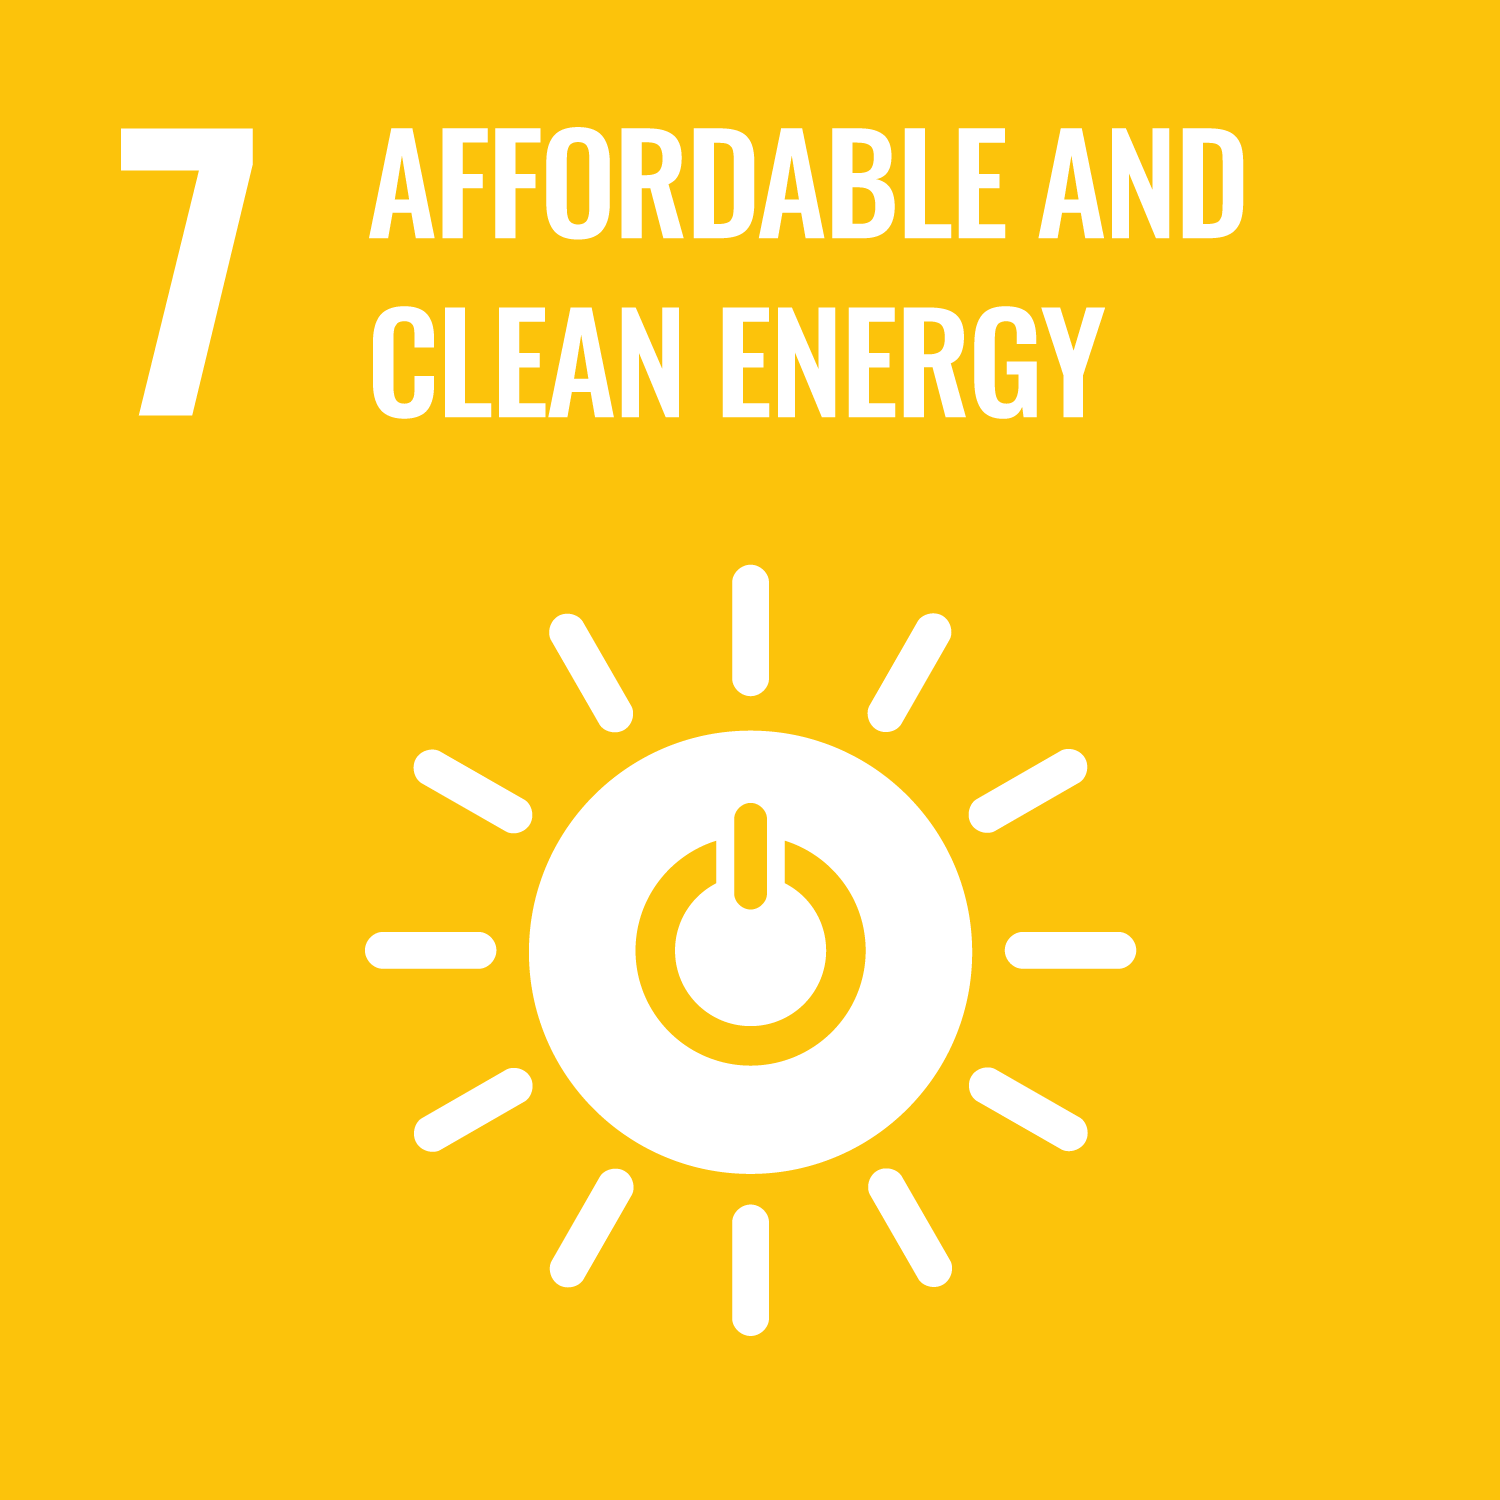 UN sustainable development goal number 7 Affordable and clean energy. Link to goal number 7.